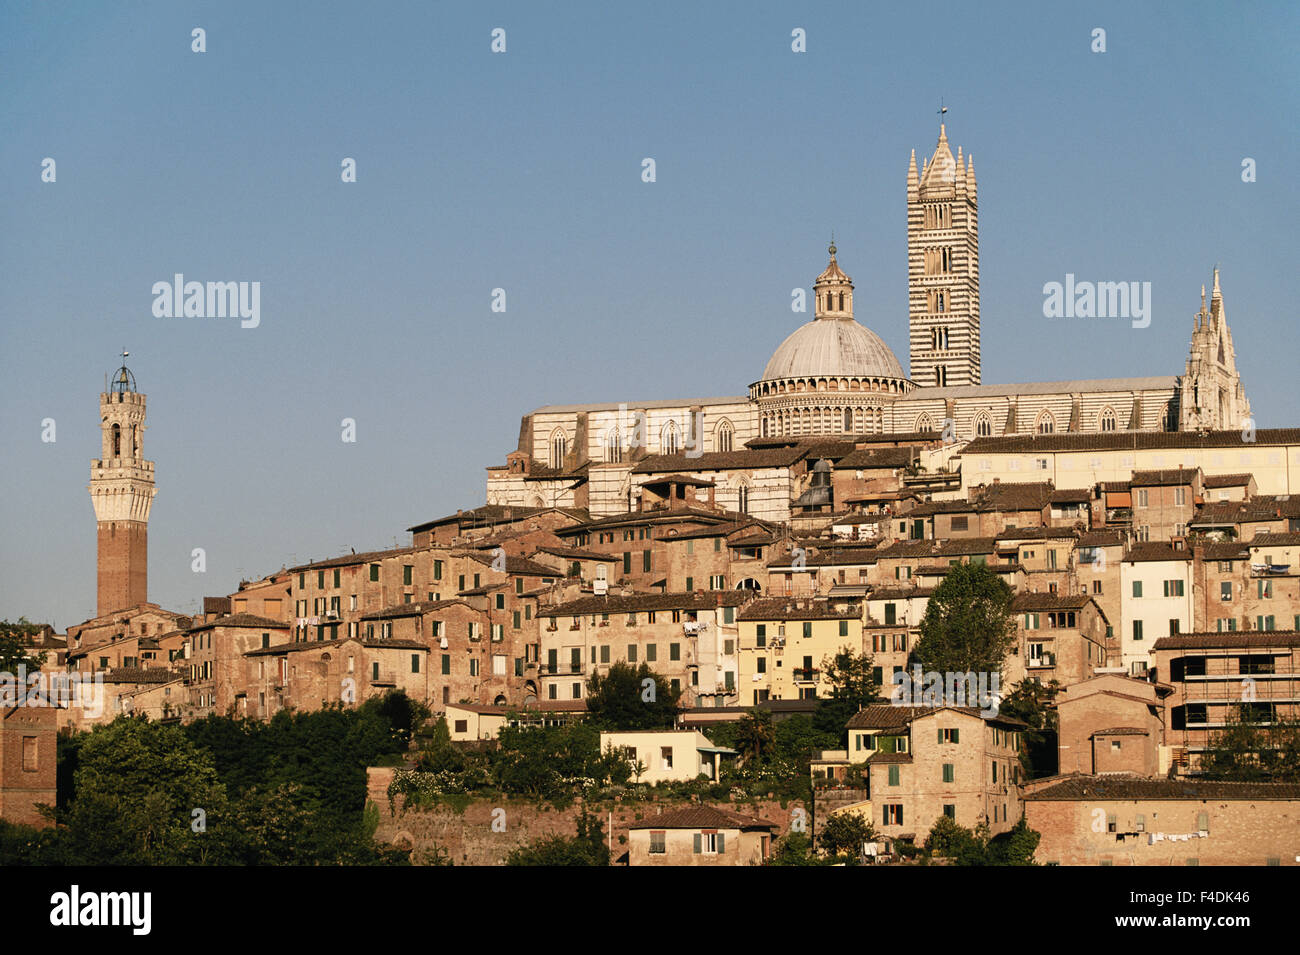 Italy, Tuscany, 13th century Duomo Cathedral and Palazzo Pubblico, Sunset. (Large format sizes available) - Stock Image